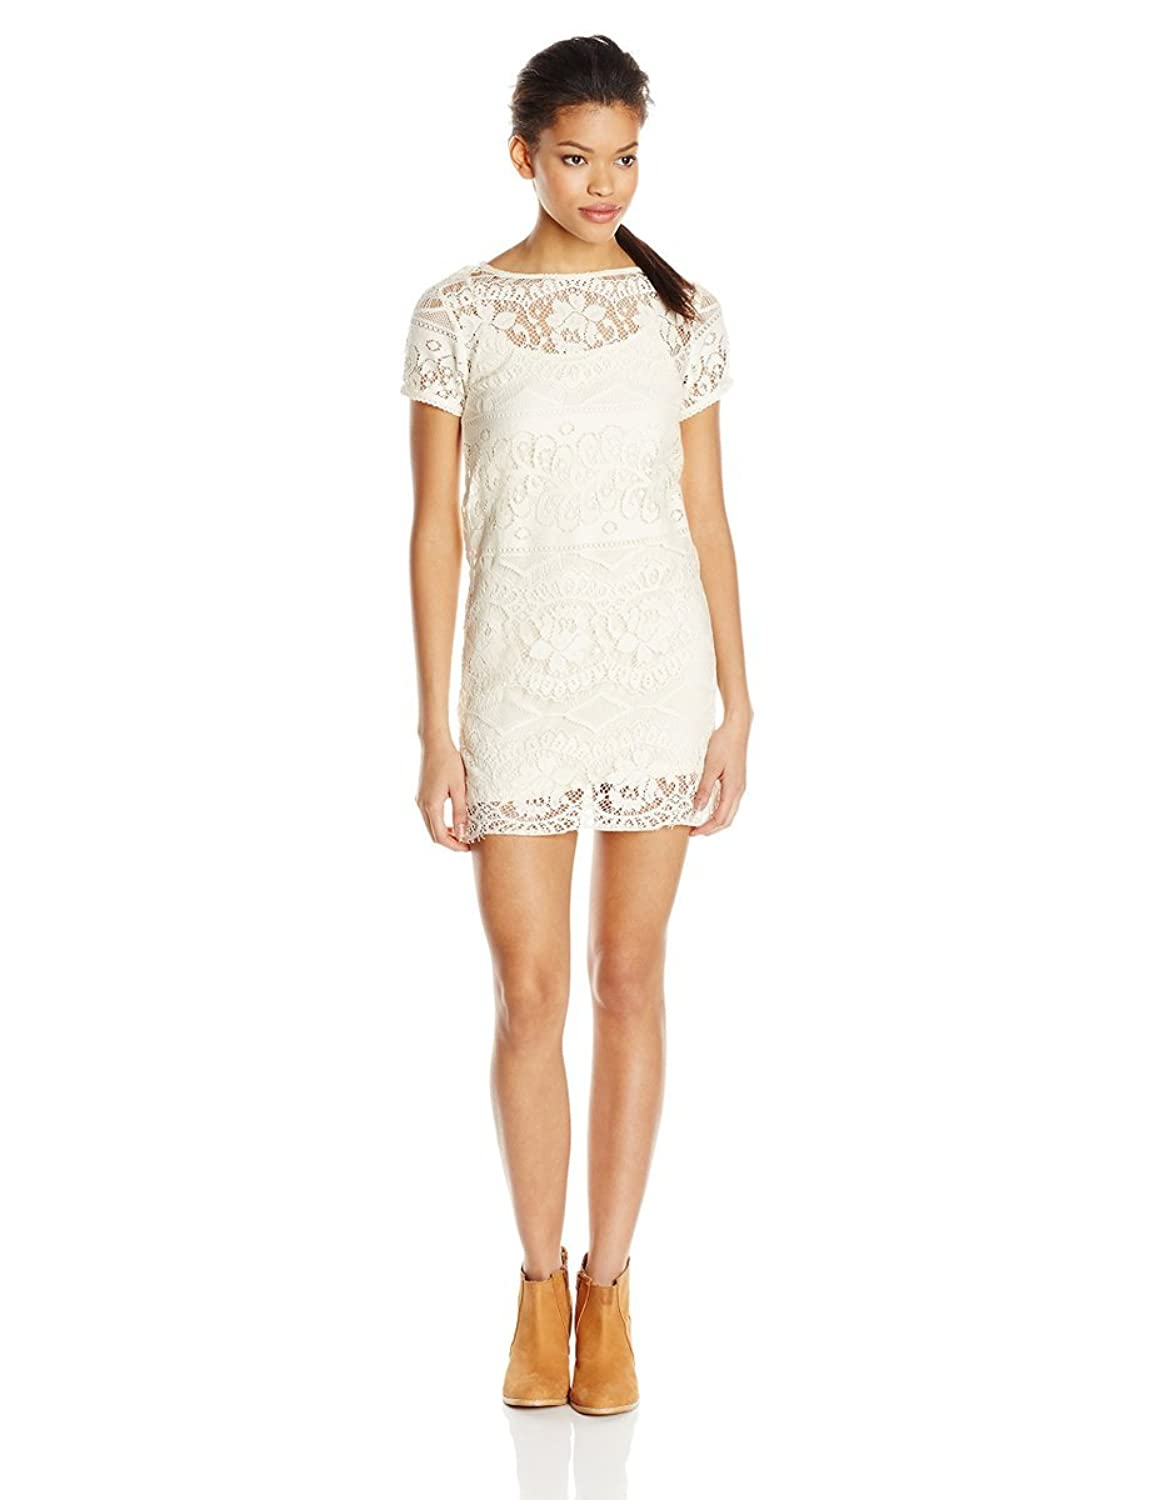 Suerhatcon Women's Mini Dress White